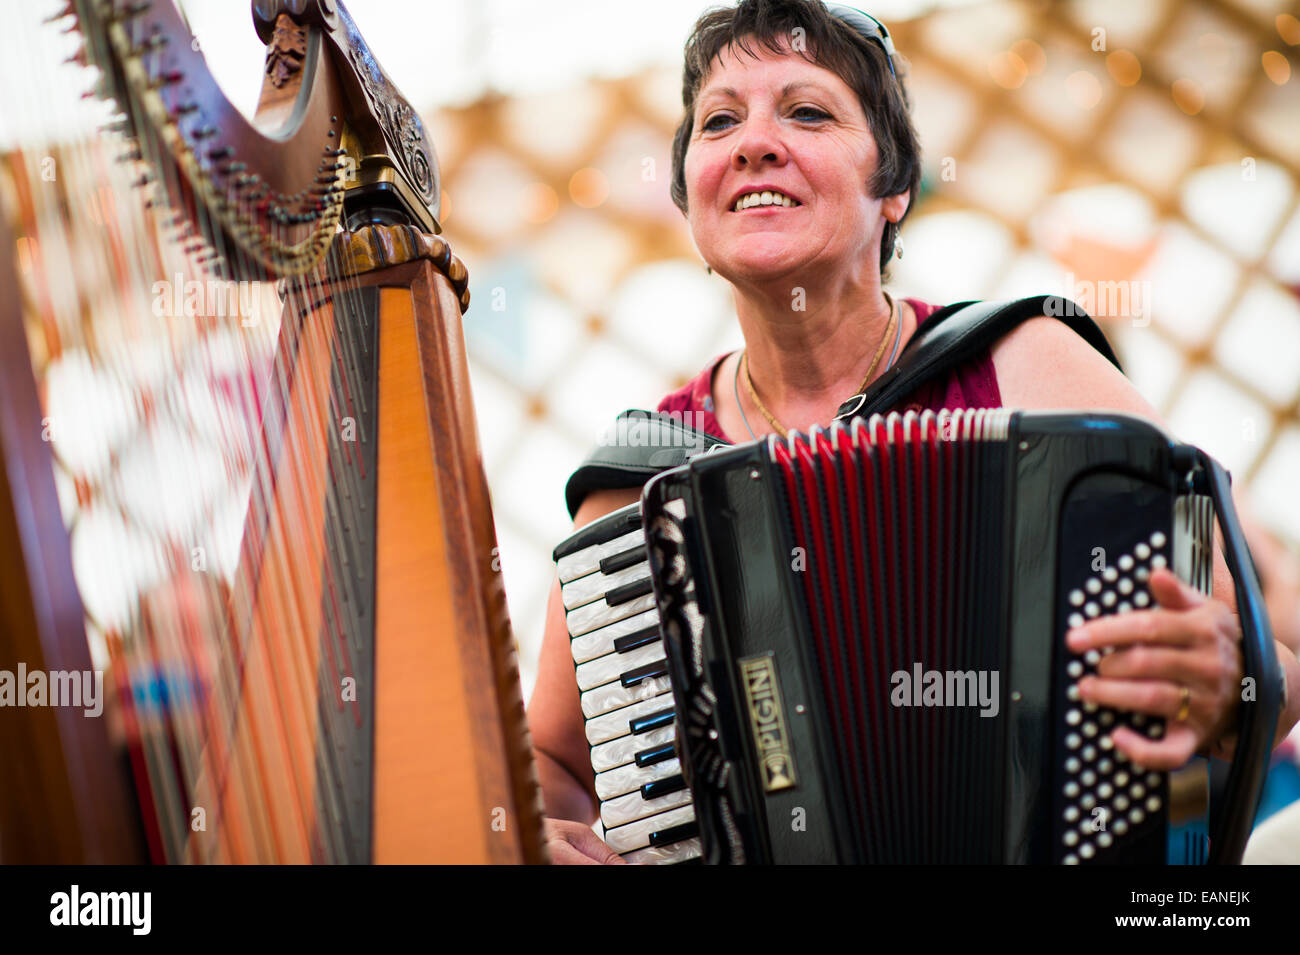 A woman playing traditional folk music on the accordion at the National Eisteddfod of Wales, Llanelli, August 2014 - Stock Image